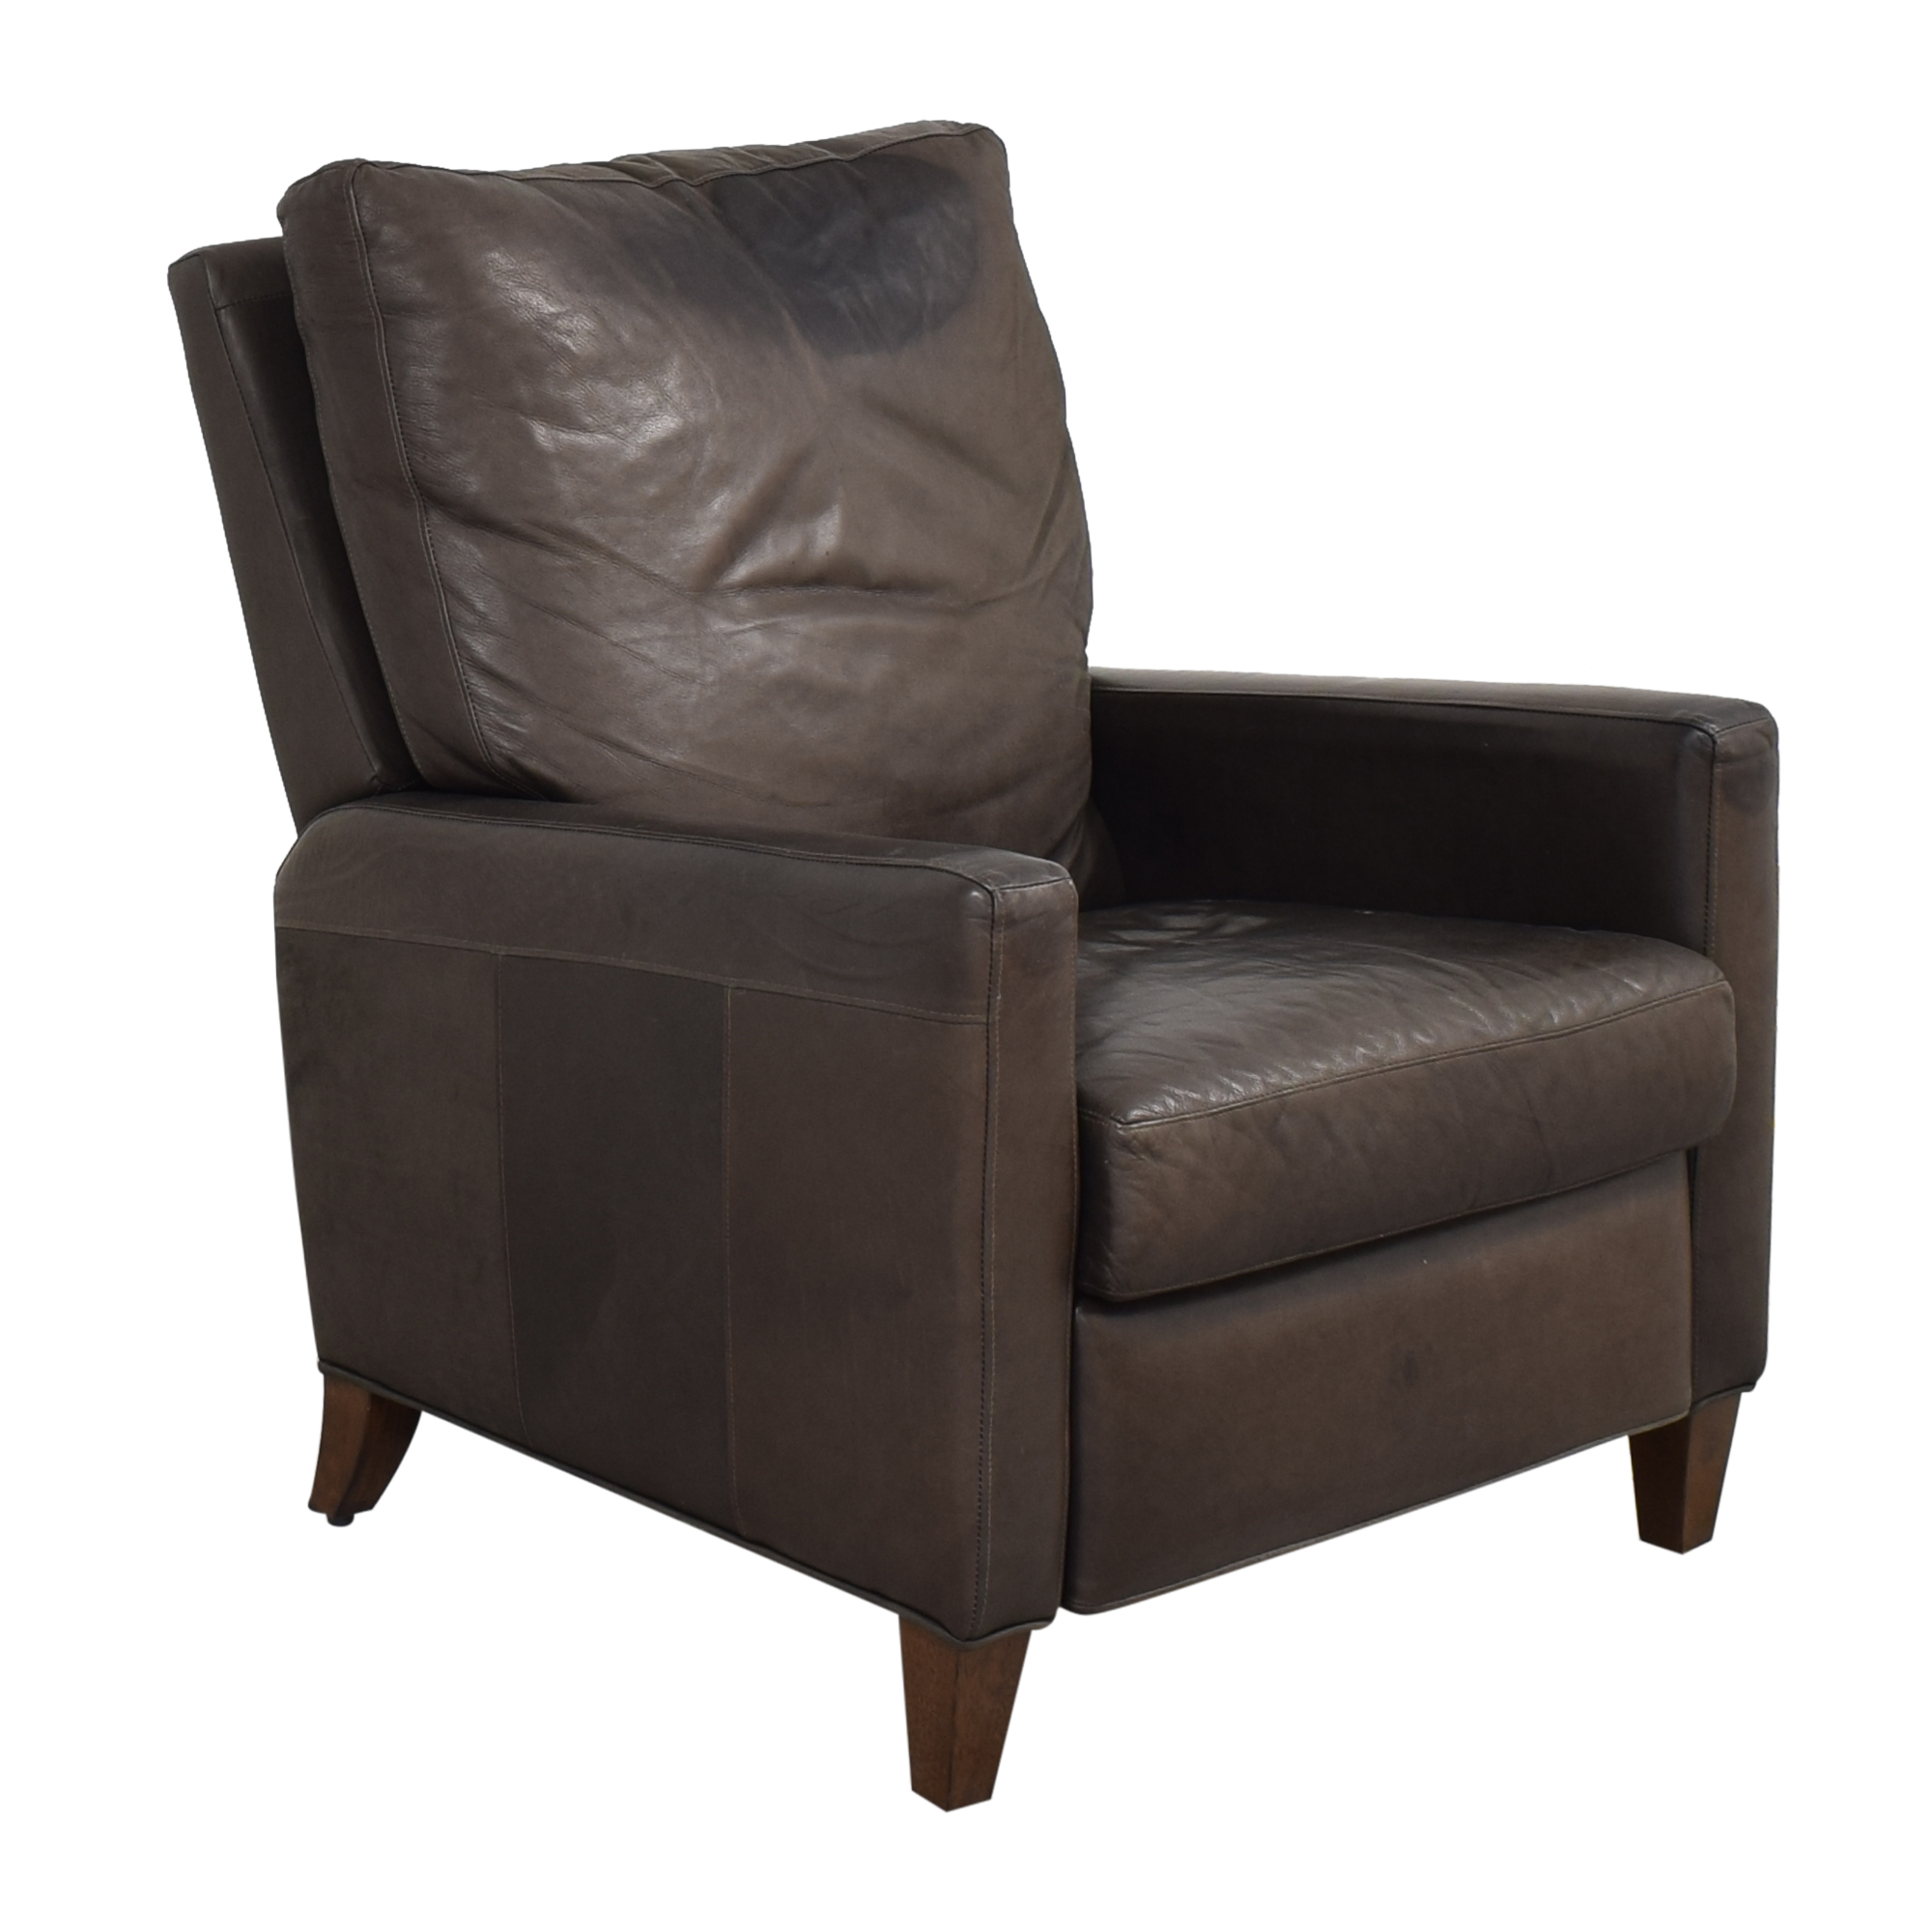 Michael Philip Custom Recliner sale